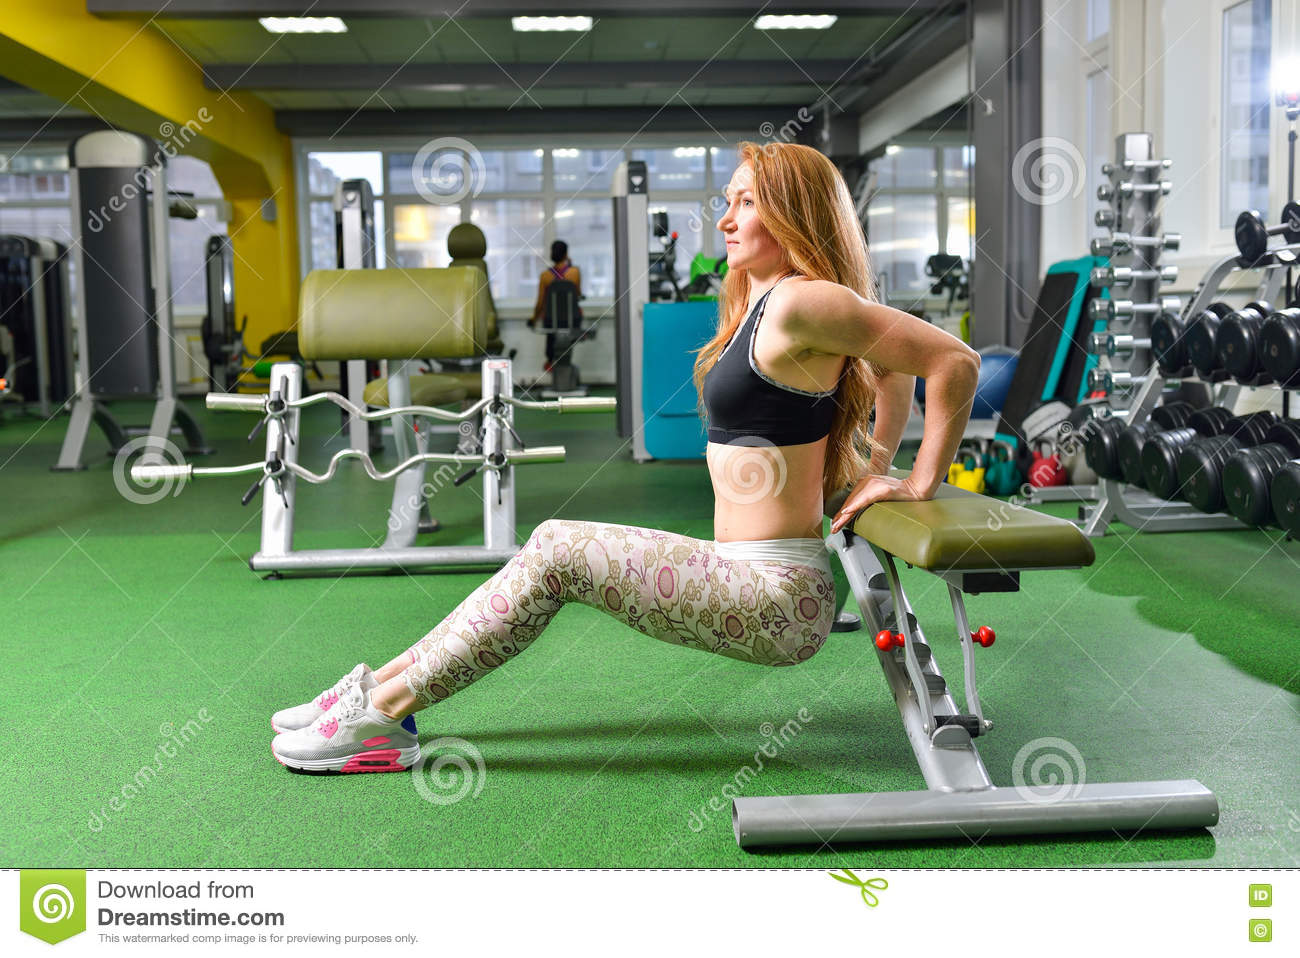 Fitness, sport, exercising lifestyle - Fit woman doing triceps dips at gym. Exercises with own body weight